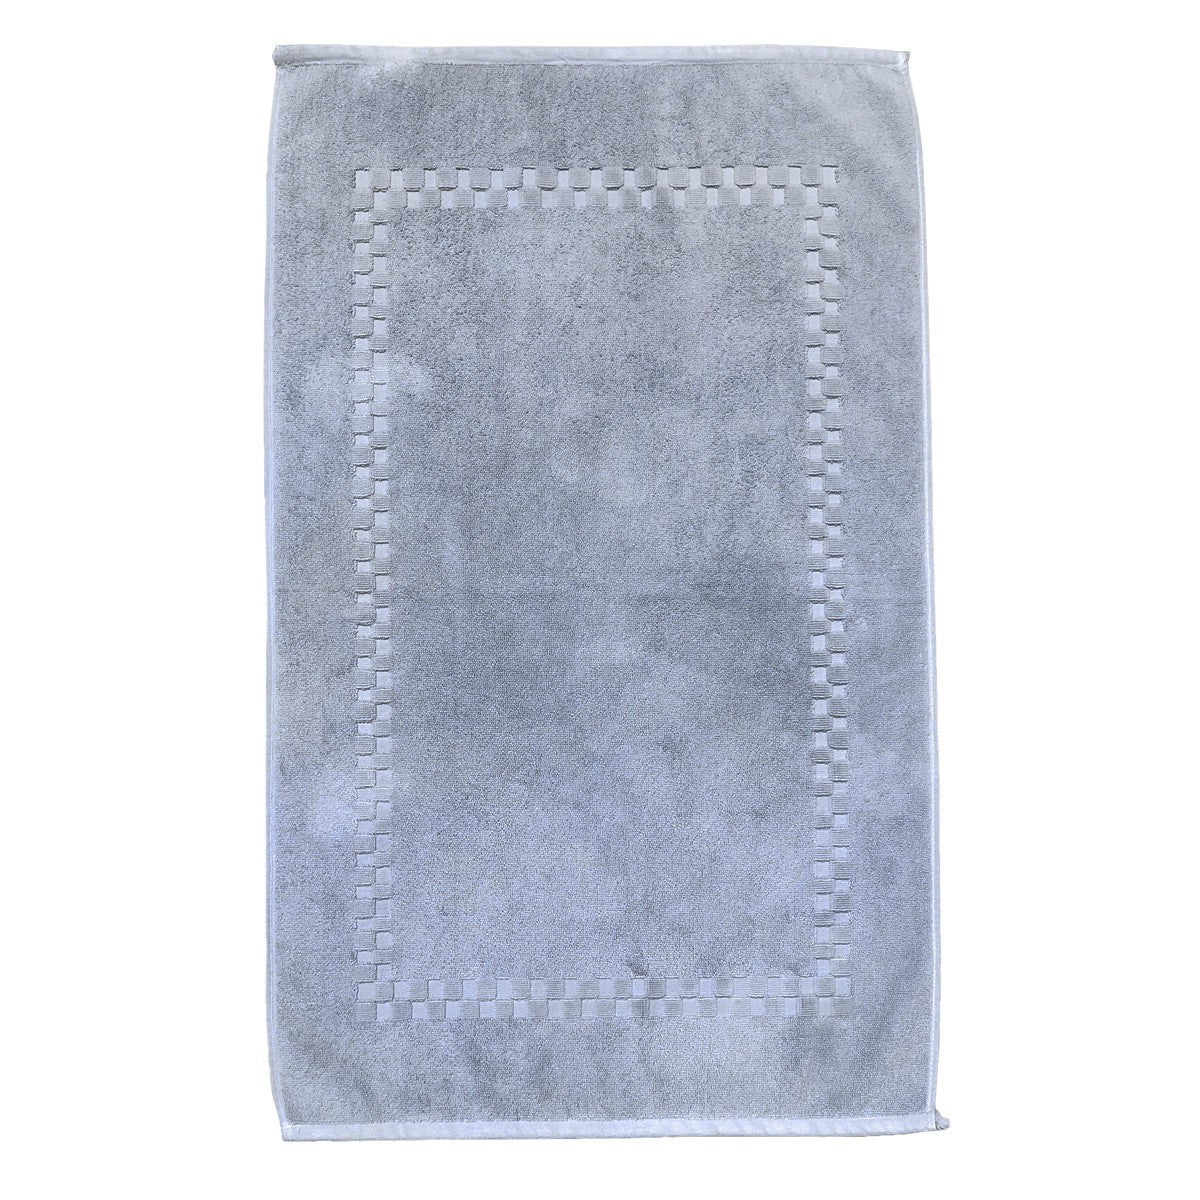 Home, Bathroom, Bath Mats, Rugs - Beverly Hills Luxury Hotel Resort Bath Mats